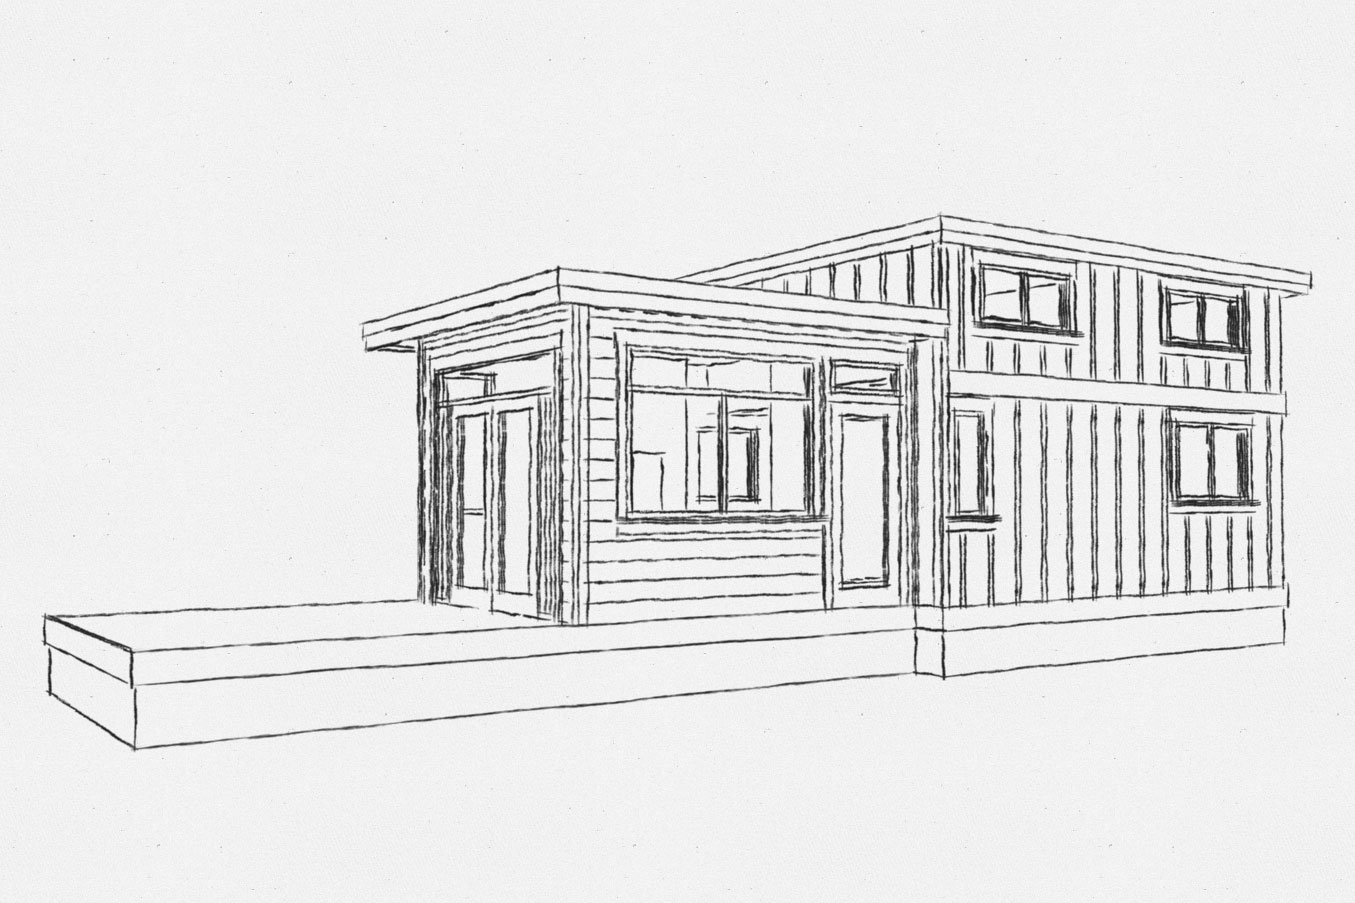 Bellevue tiny home model